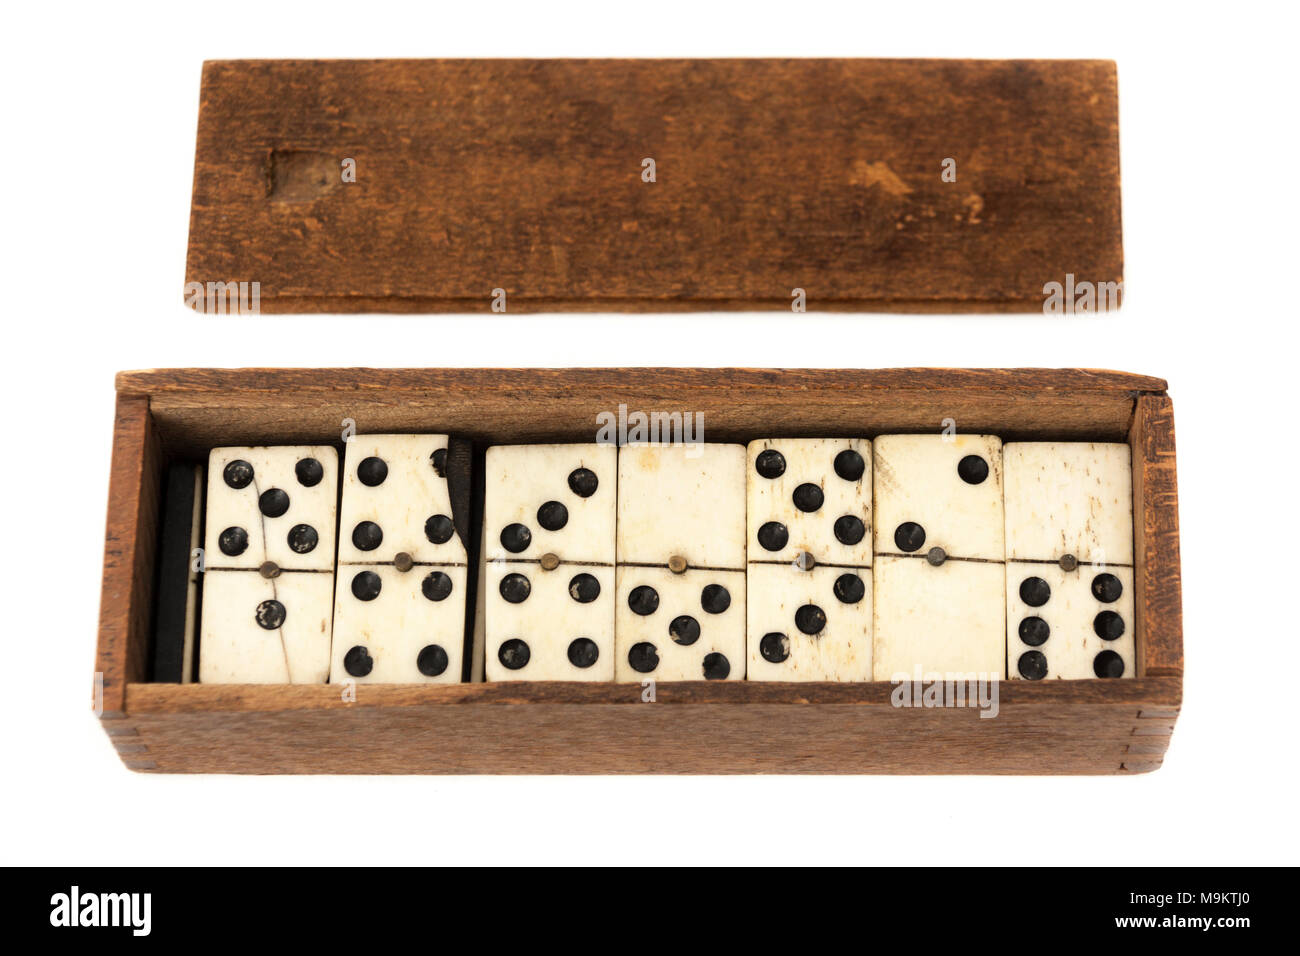 Antique set of dominoes made from bone - Stock Image